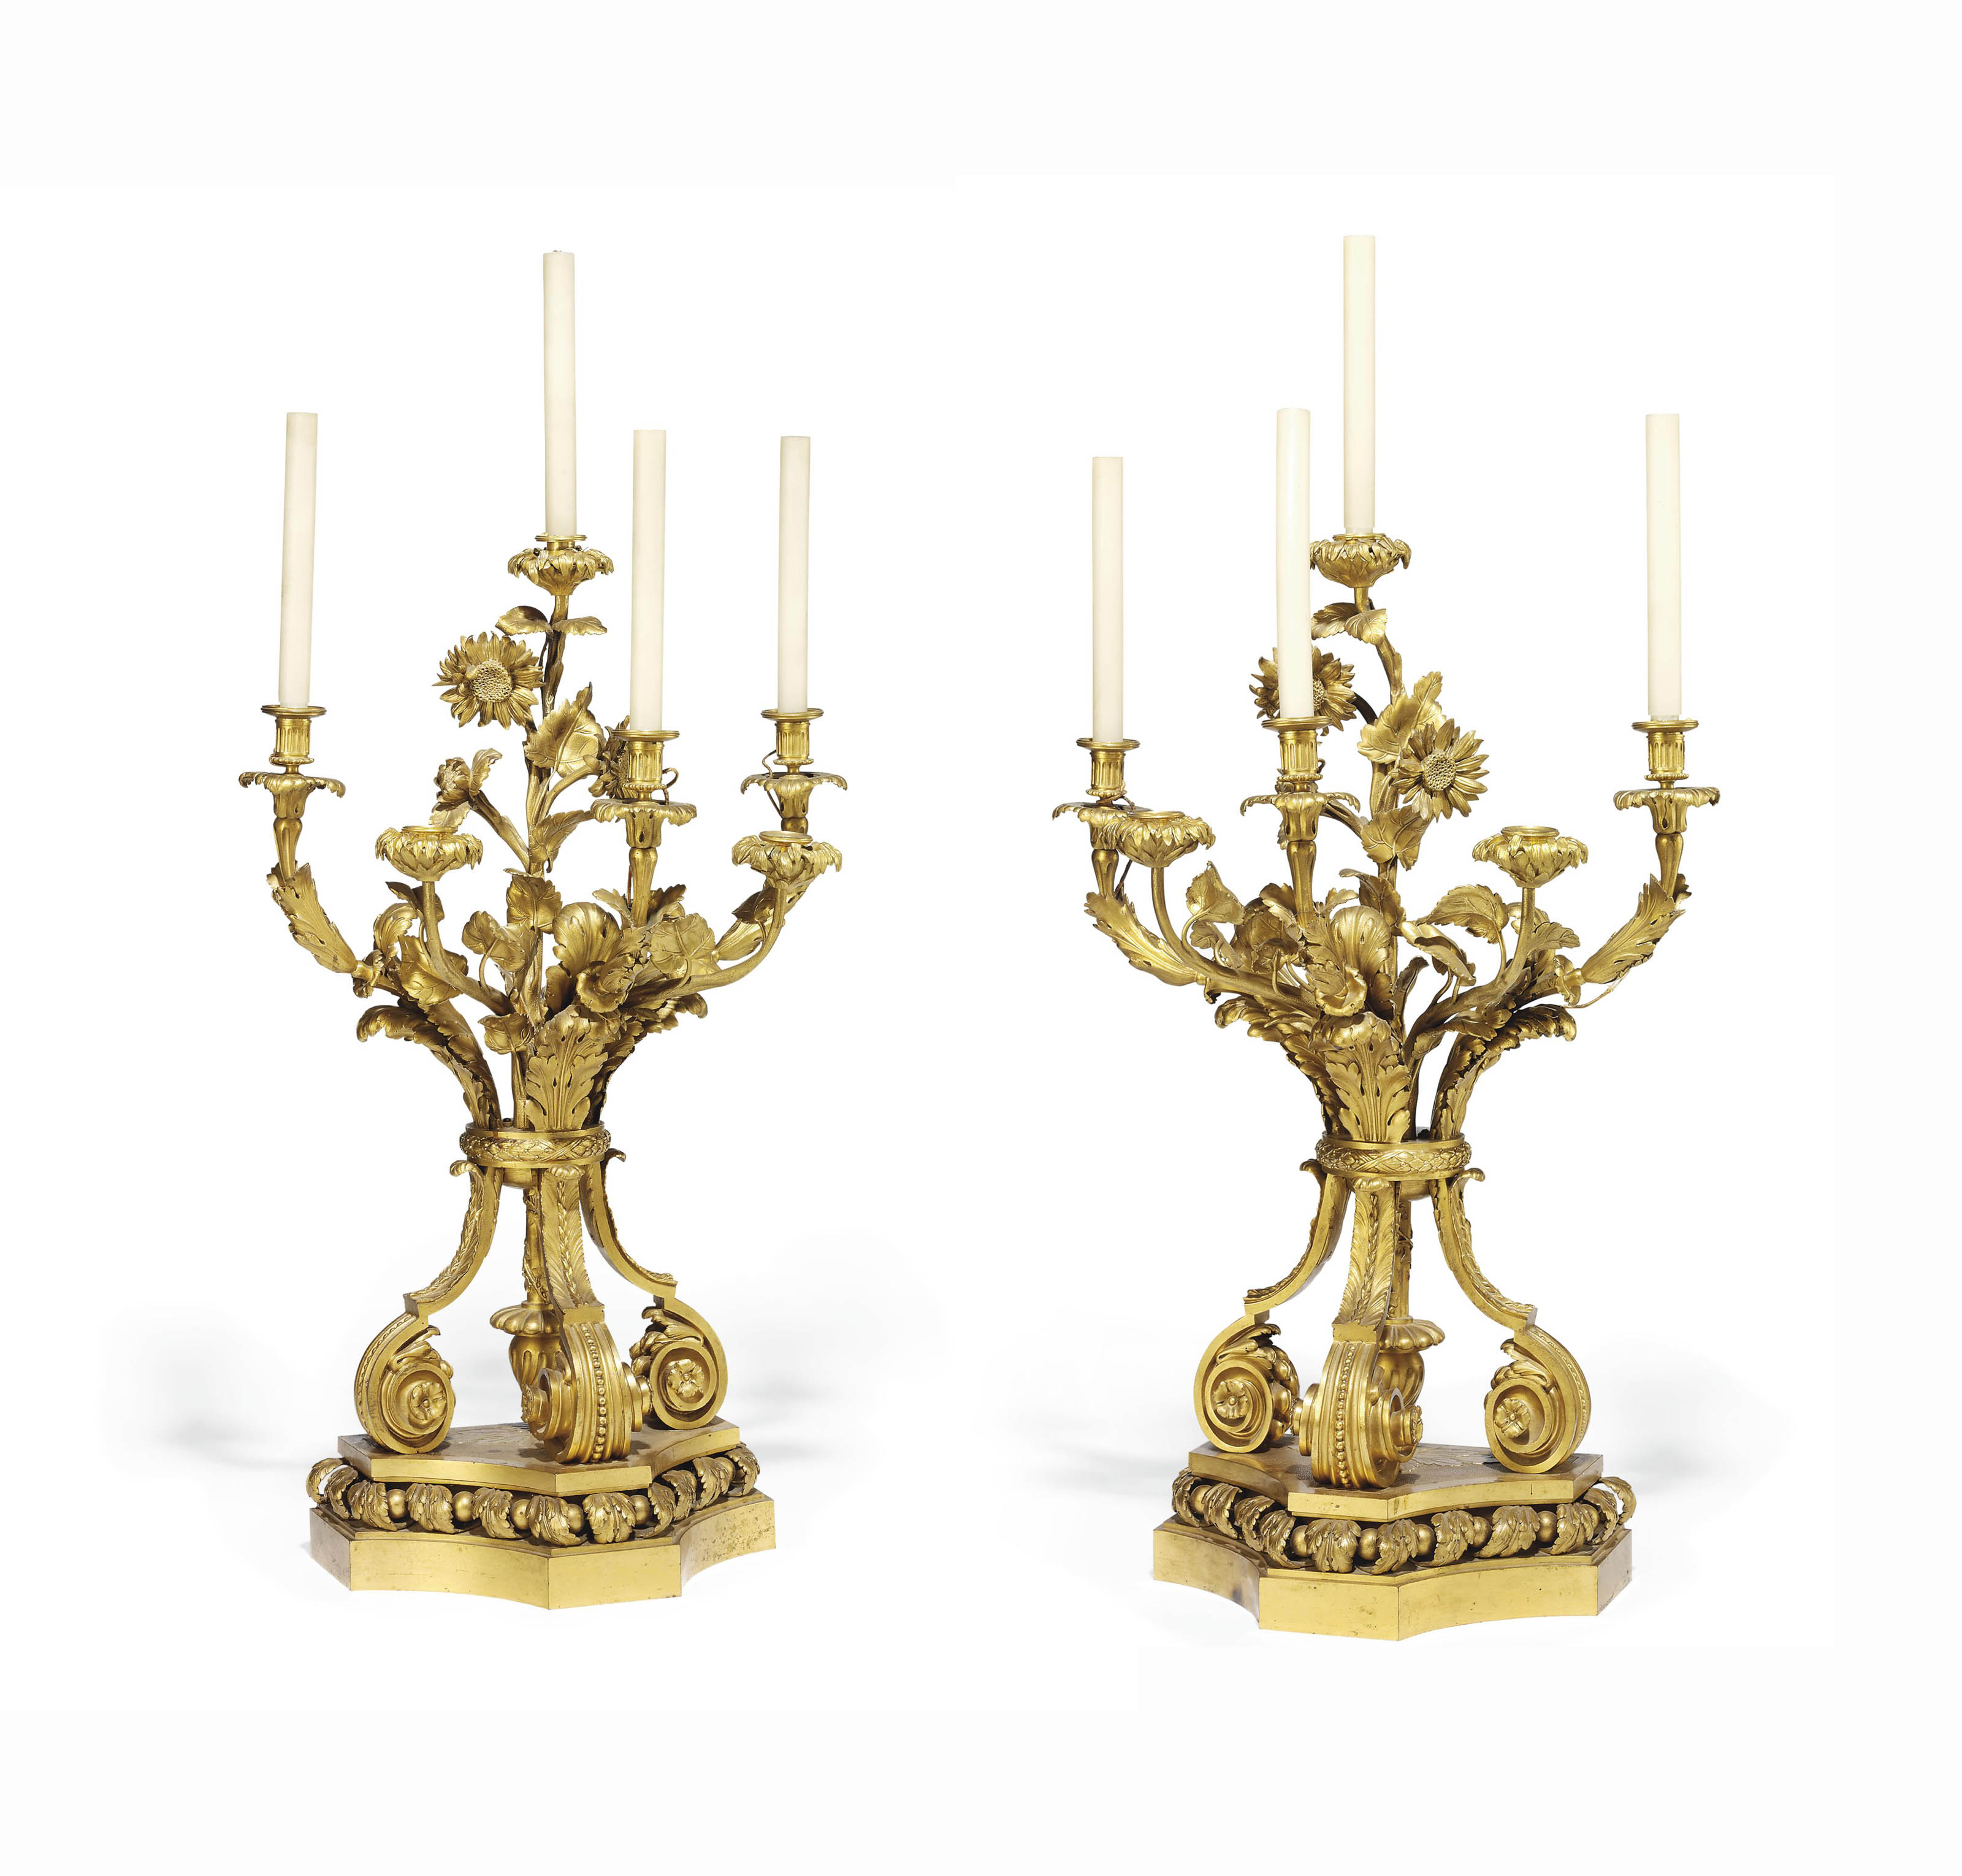 A PAIR OF FRENCH ORMOLU SIX-LIGHT CANDELABRA